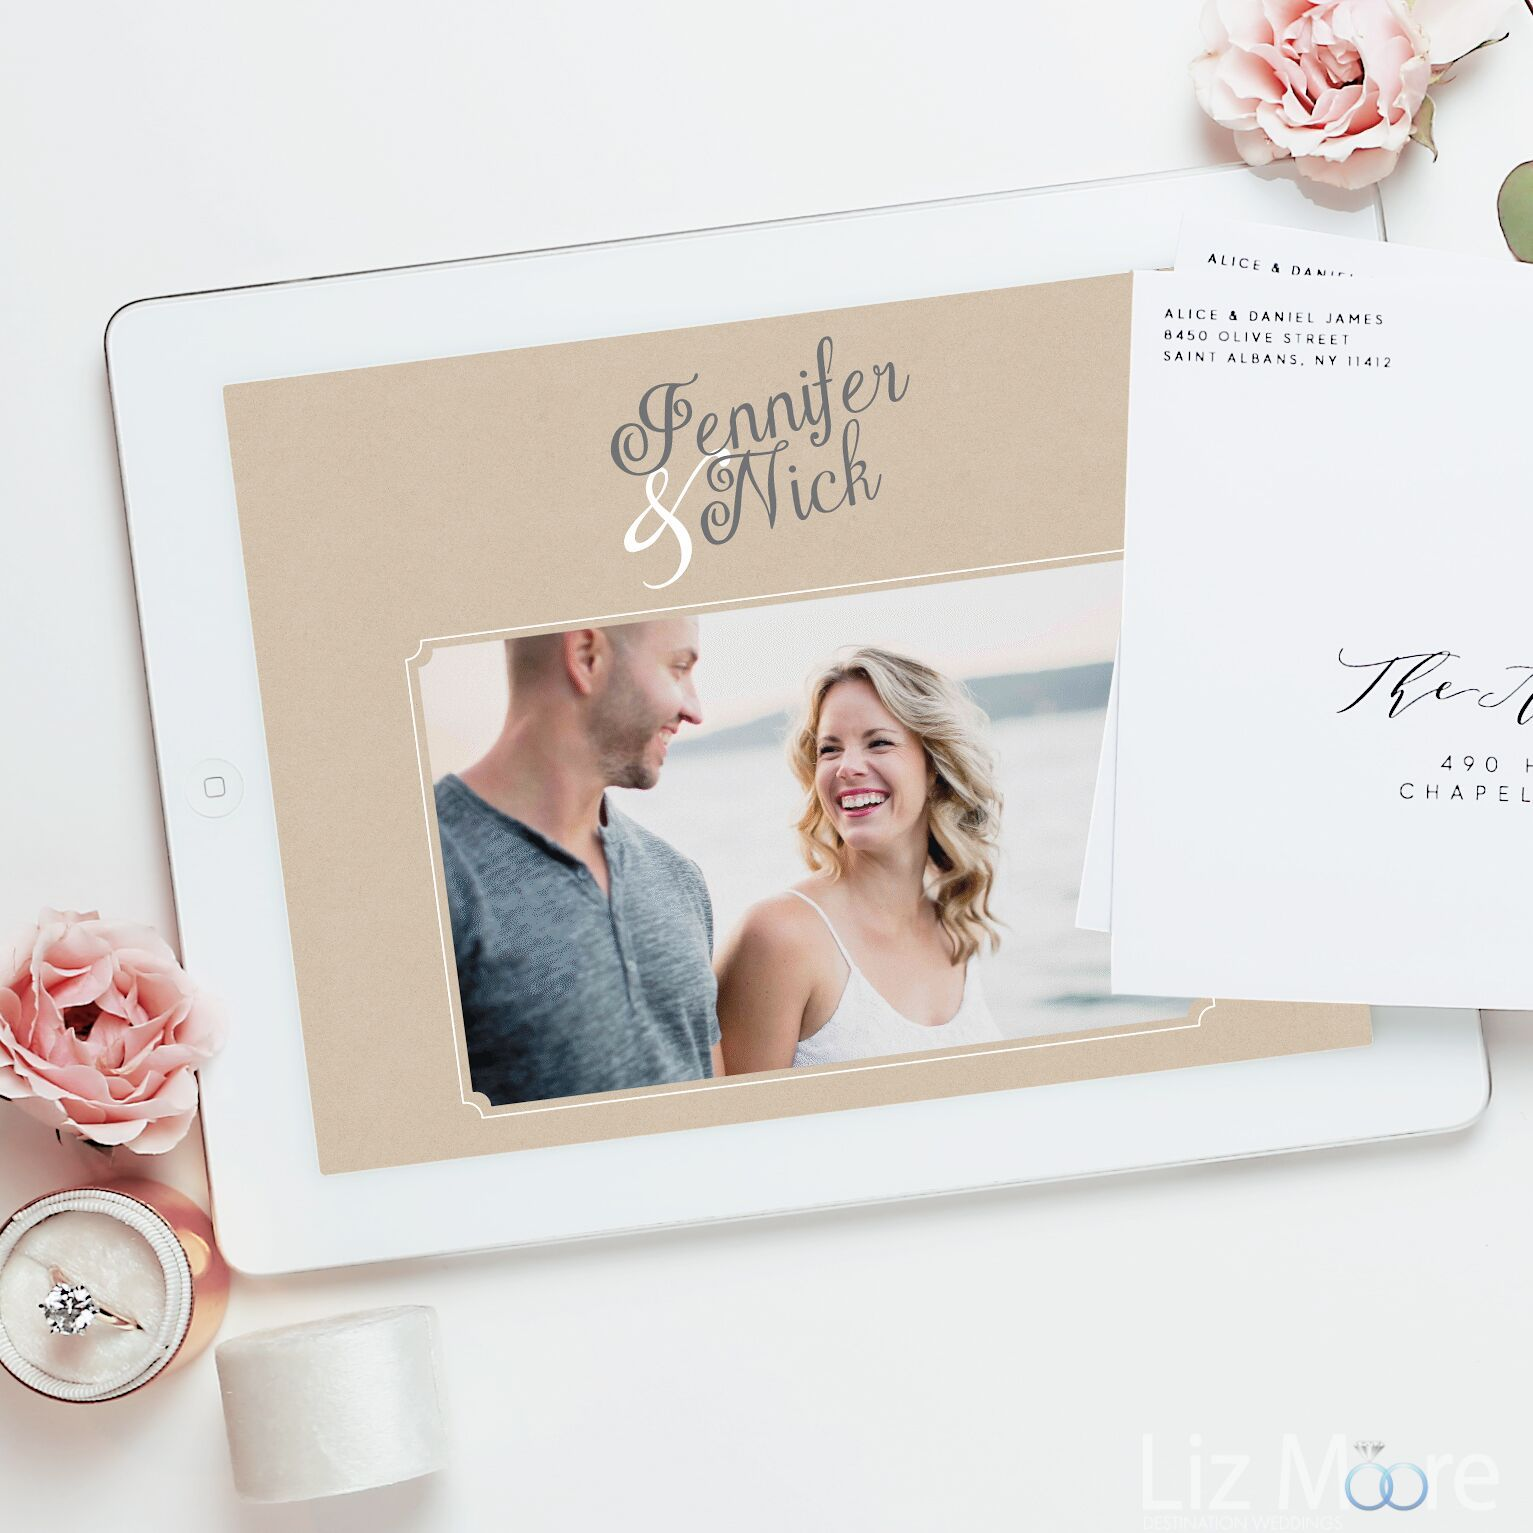 Basic Invitation: Fabulous Engagement Invitation Options